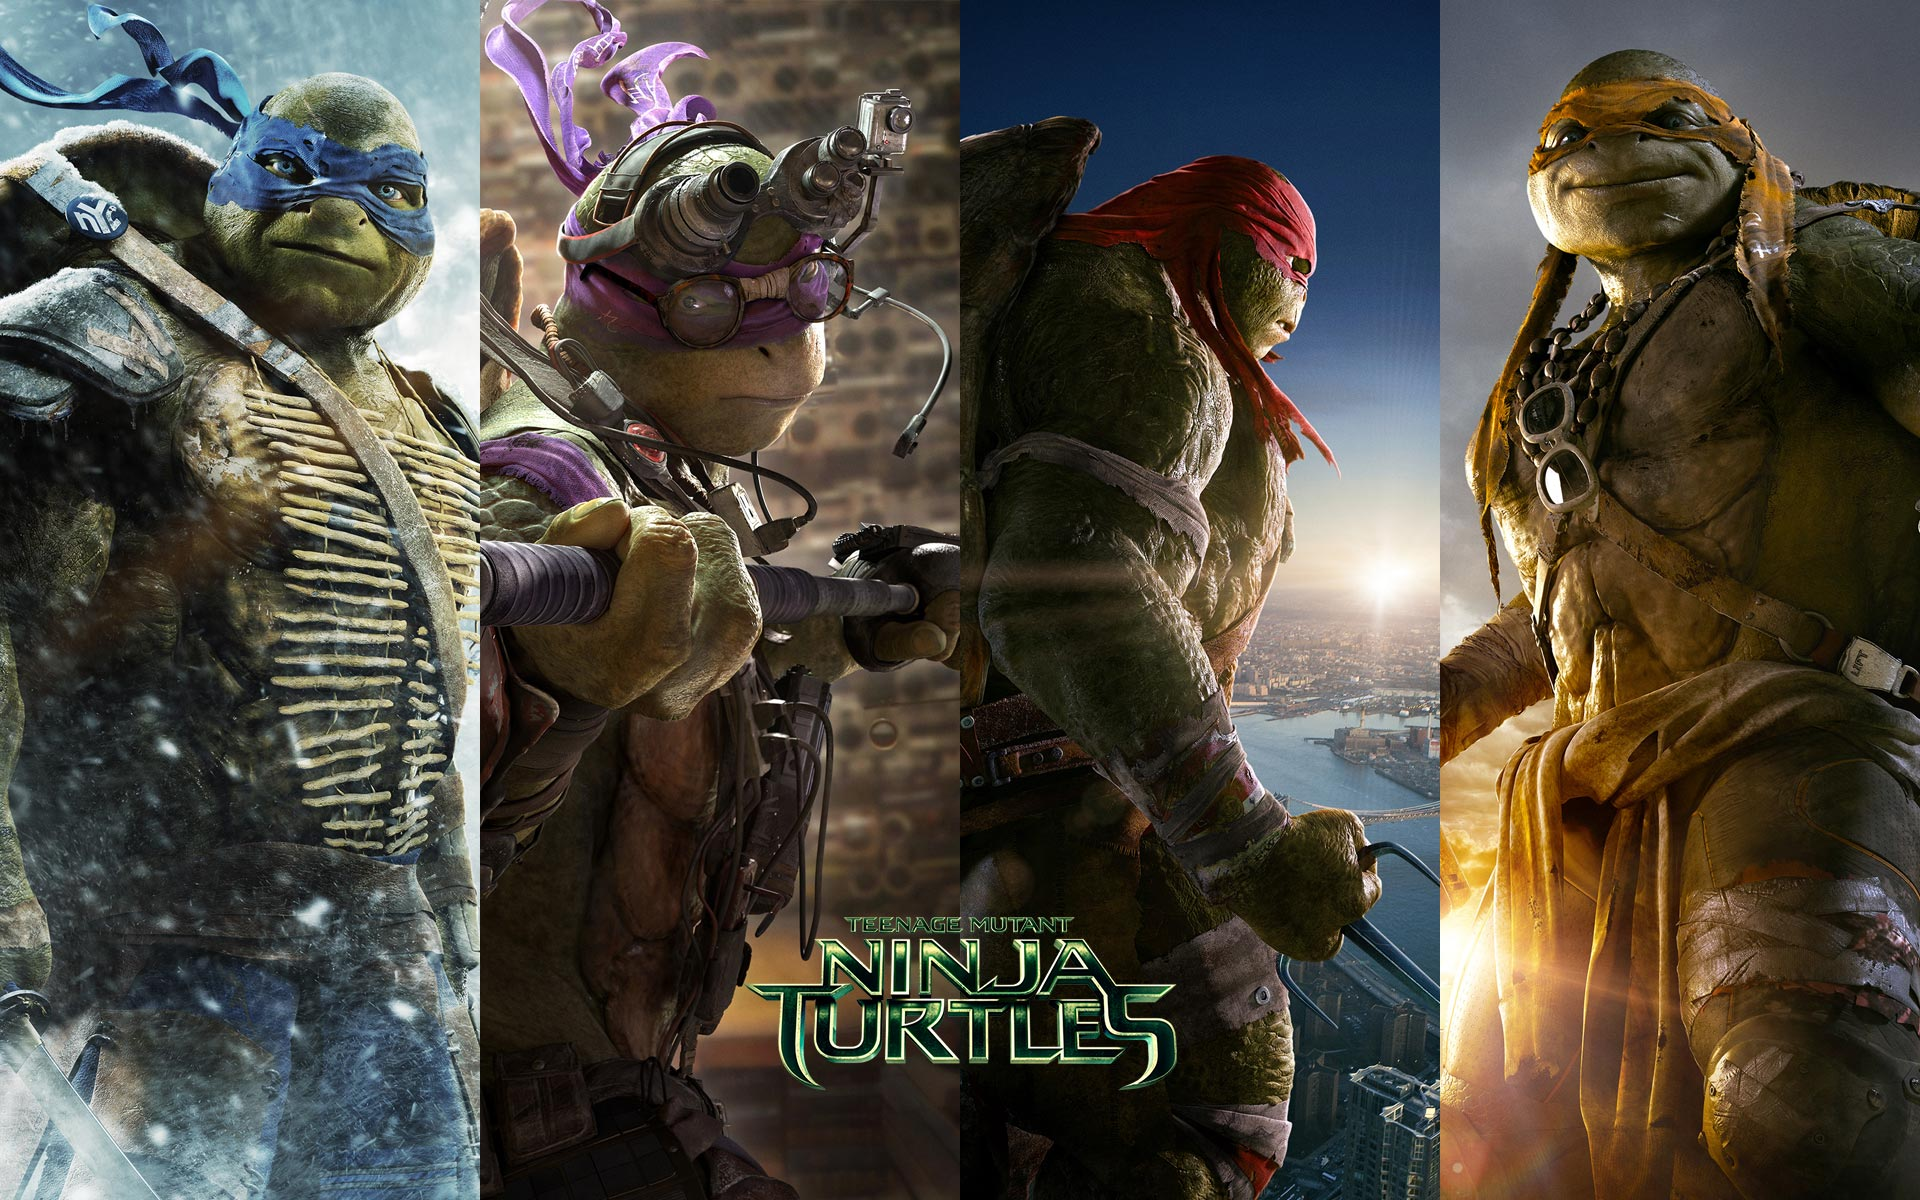 tmnt 2014-teenage mutant ninja turtles 2014